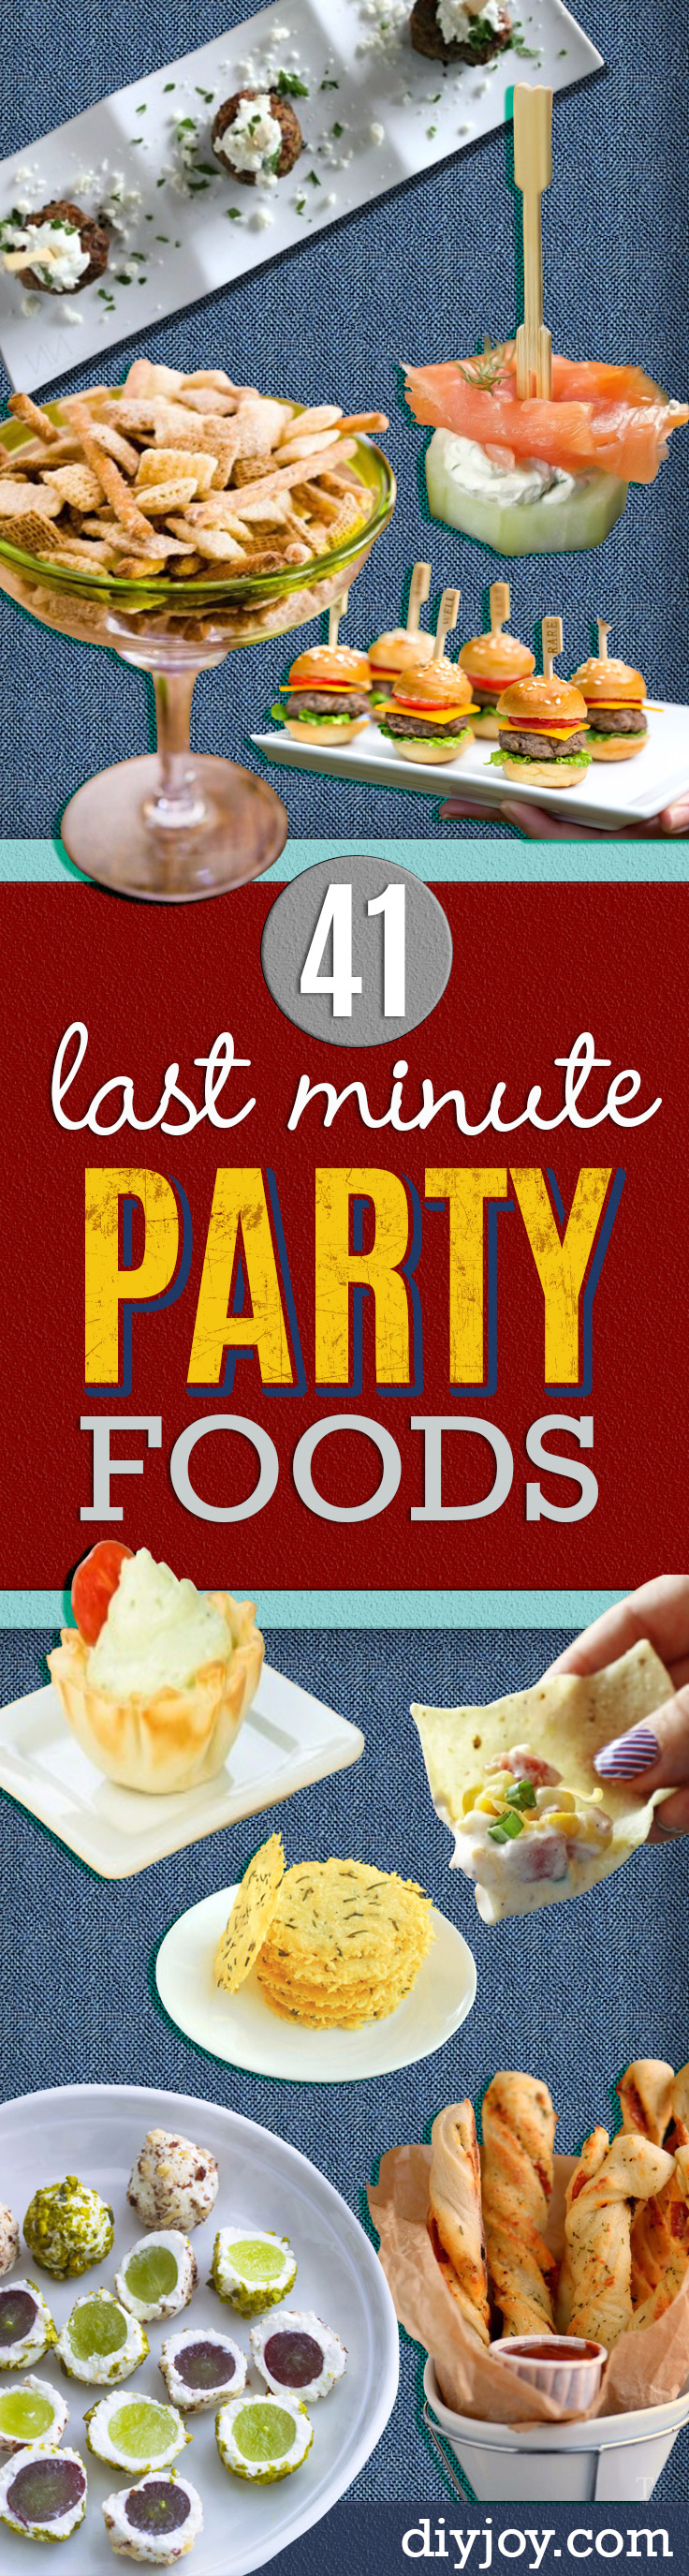 41 Last Minute Party Foods